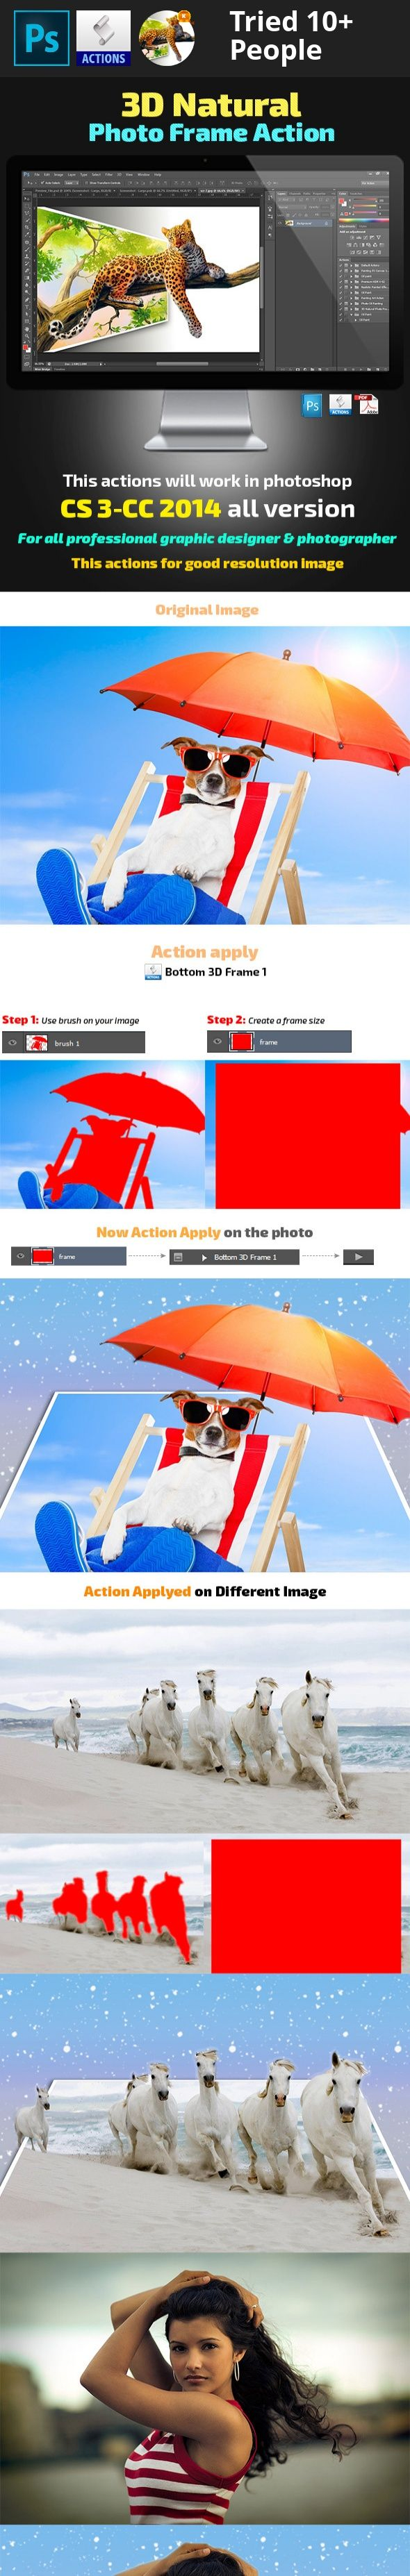 3d, 3d effect, action, actions, add-on, advanced, atn, automate, blurred, bokeh, edition, effect, fashion, film, light, lights, manipulation, modern, pattern, photo effect, photography, Photography Resources, photoshop, psd, realistic, reflex, retro, shimmer, shine, stunning  Click on the image for watch the video   3D Natural Photo Frame Action Features i.  One Click To Apply An Amazing Effects On Your Photo  ii. Clean actions, Clean work, easily editable  iii. Fully Customizable and easy…